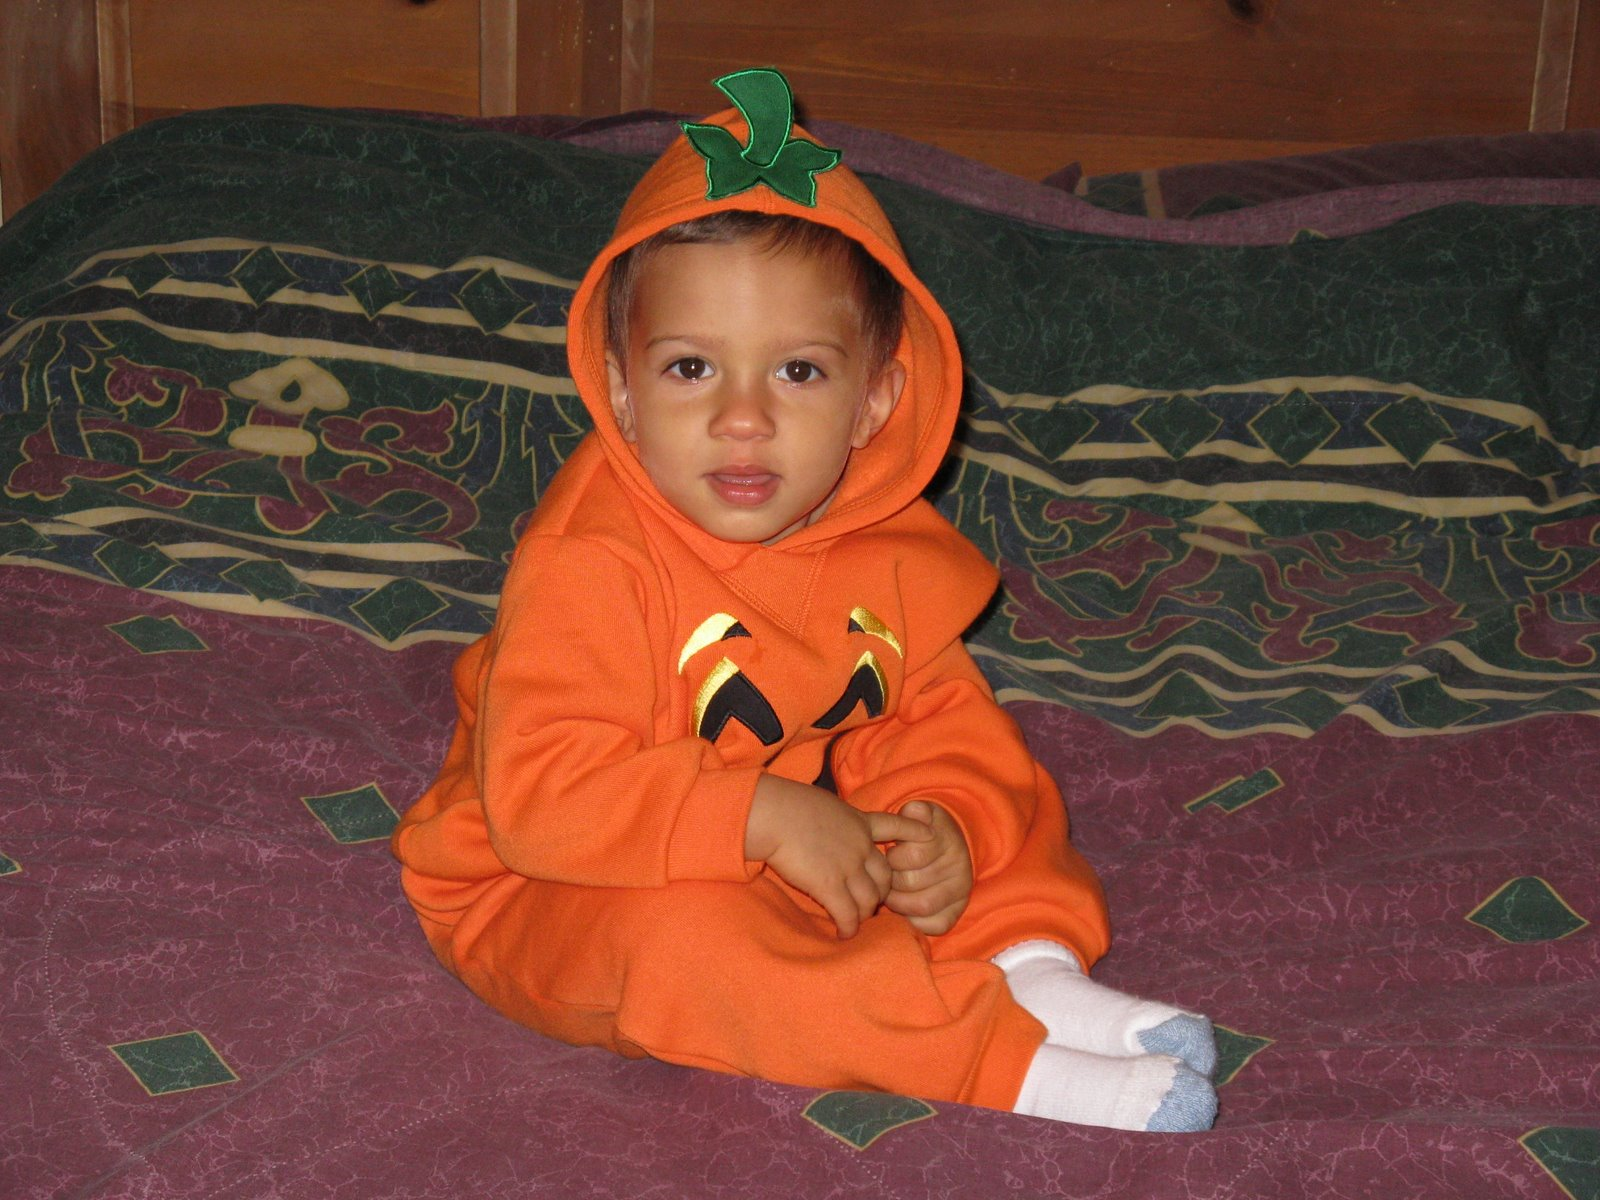 VJ, Our Little Pumpkin